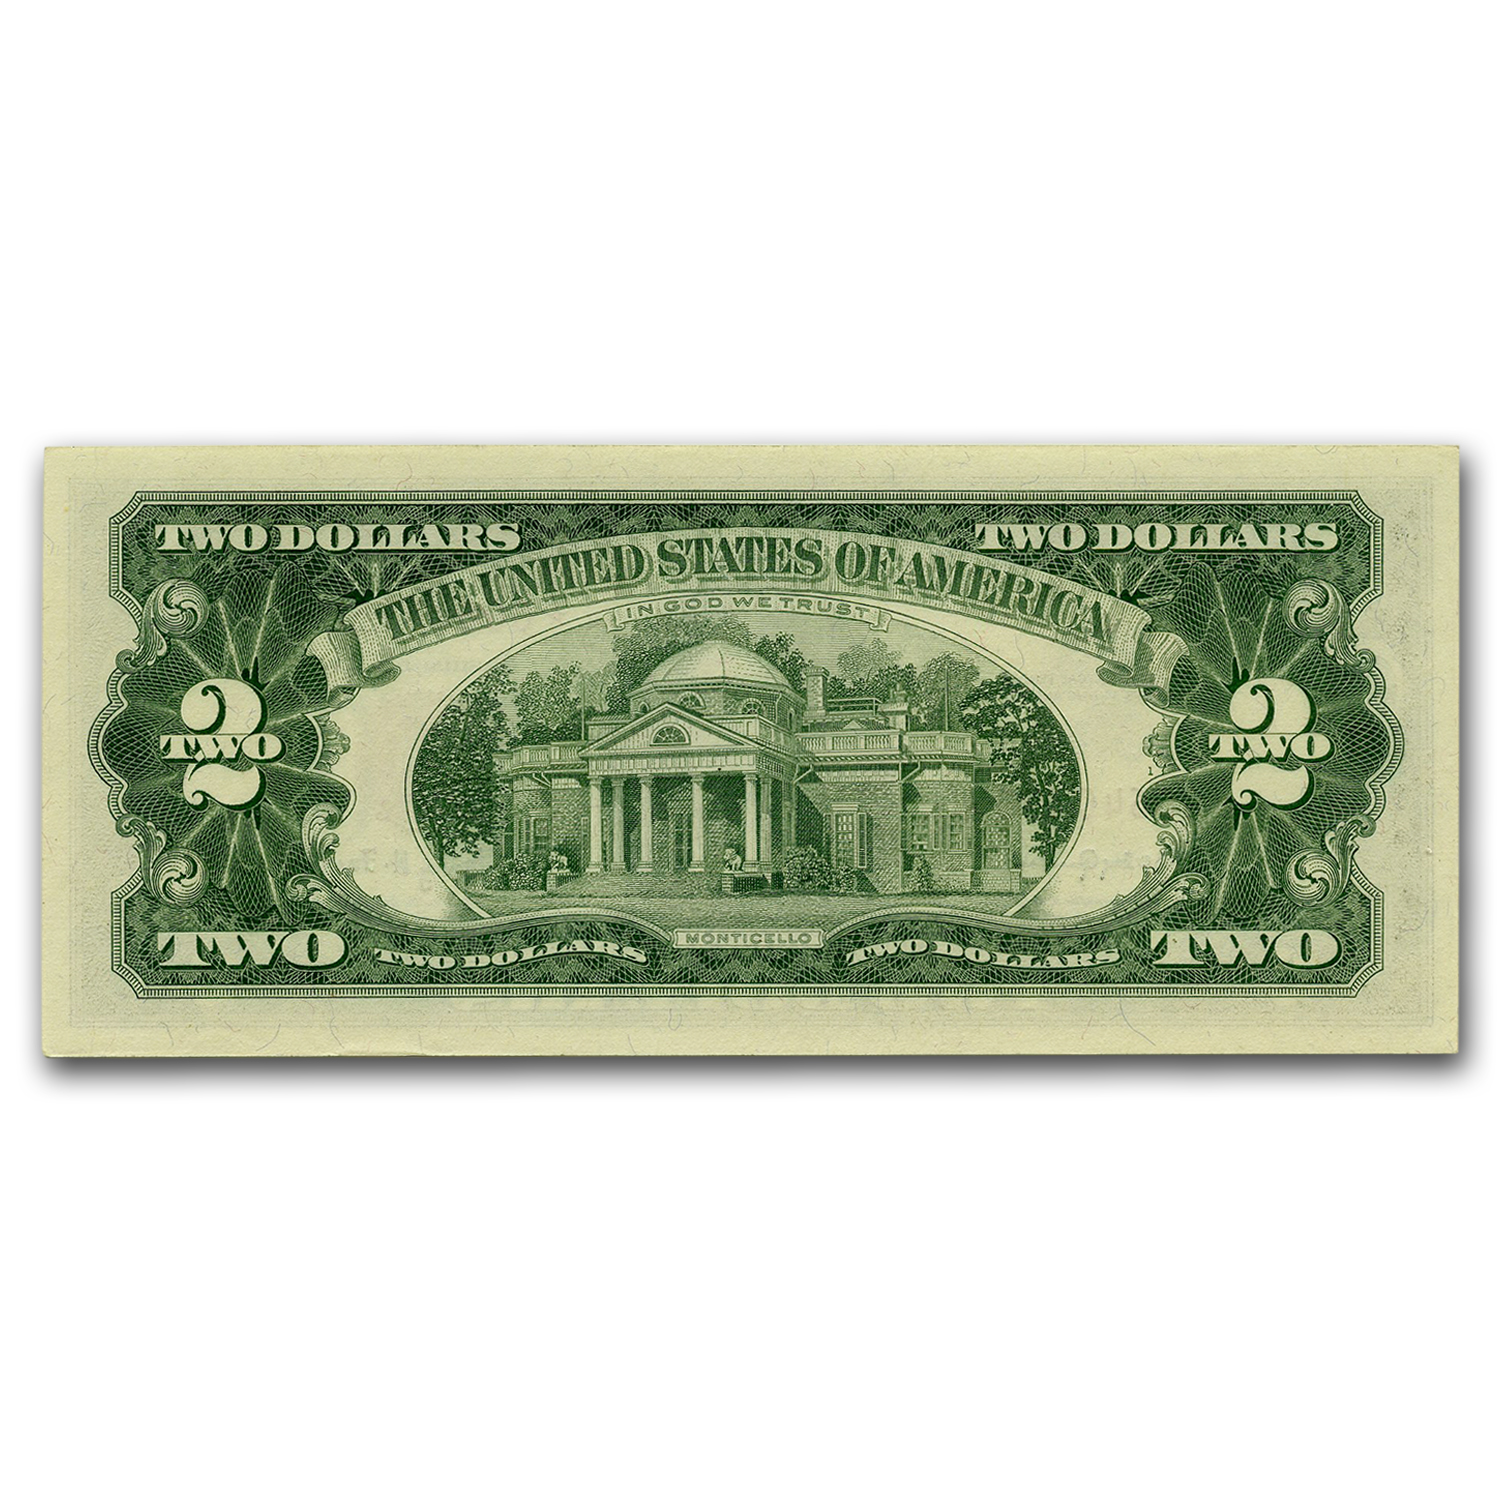 1963-A* $2.00 U.S. Notes Red Seal CU-64 PPQ PCGS (STAR NOTE)